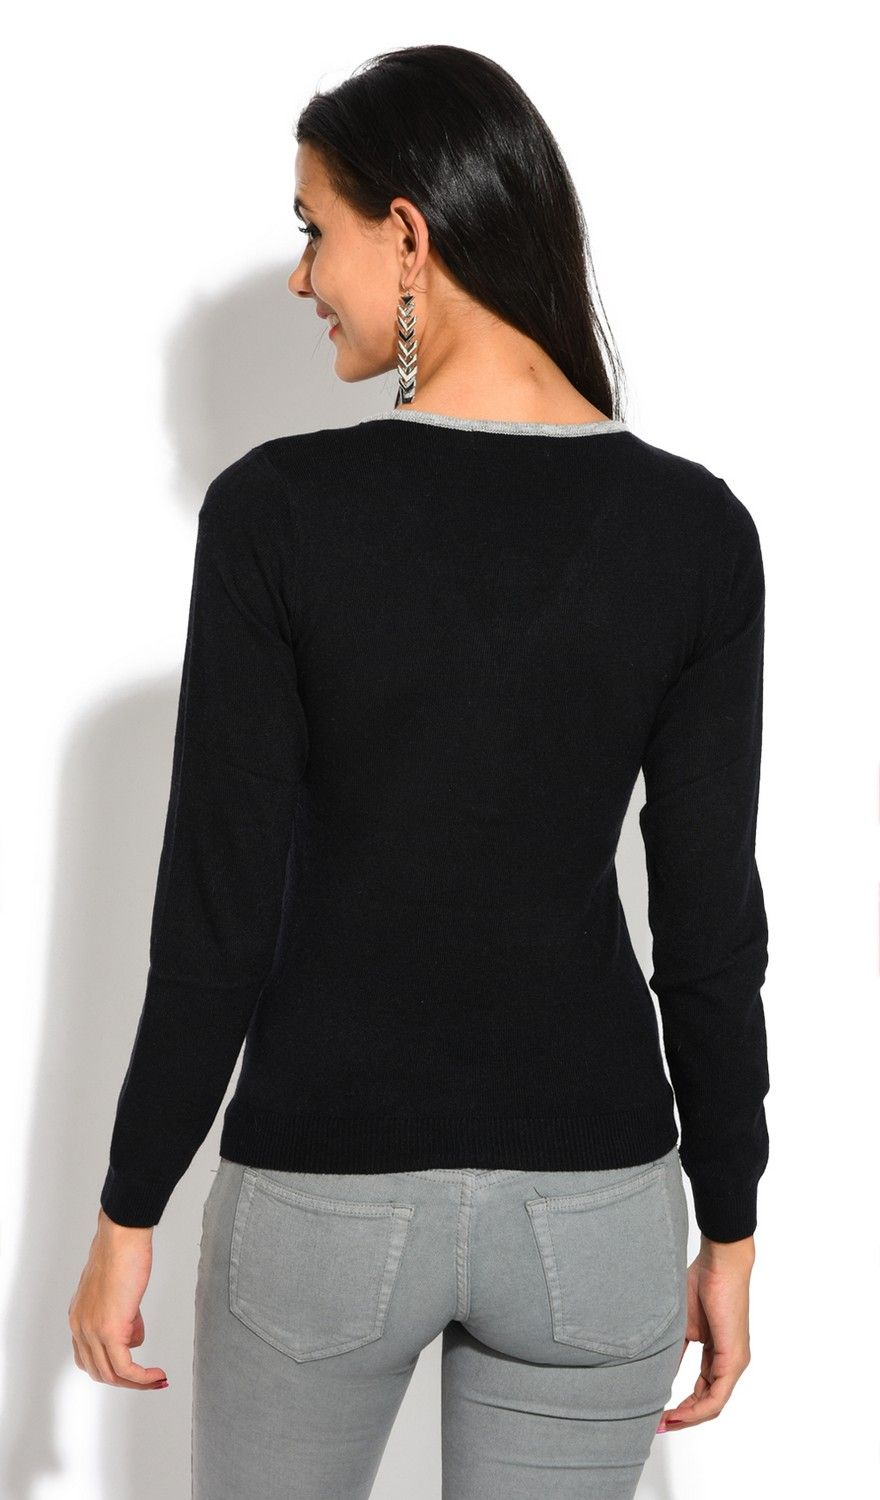 Assuili V-Neck Long Sleeve Two-tone Zip Detail Sweater in Black